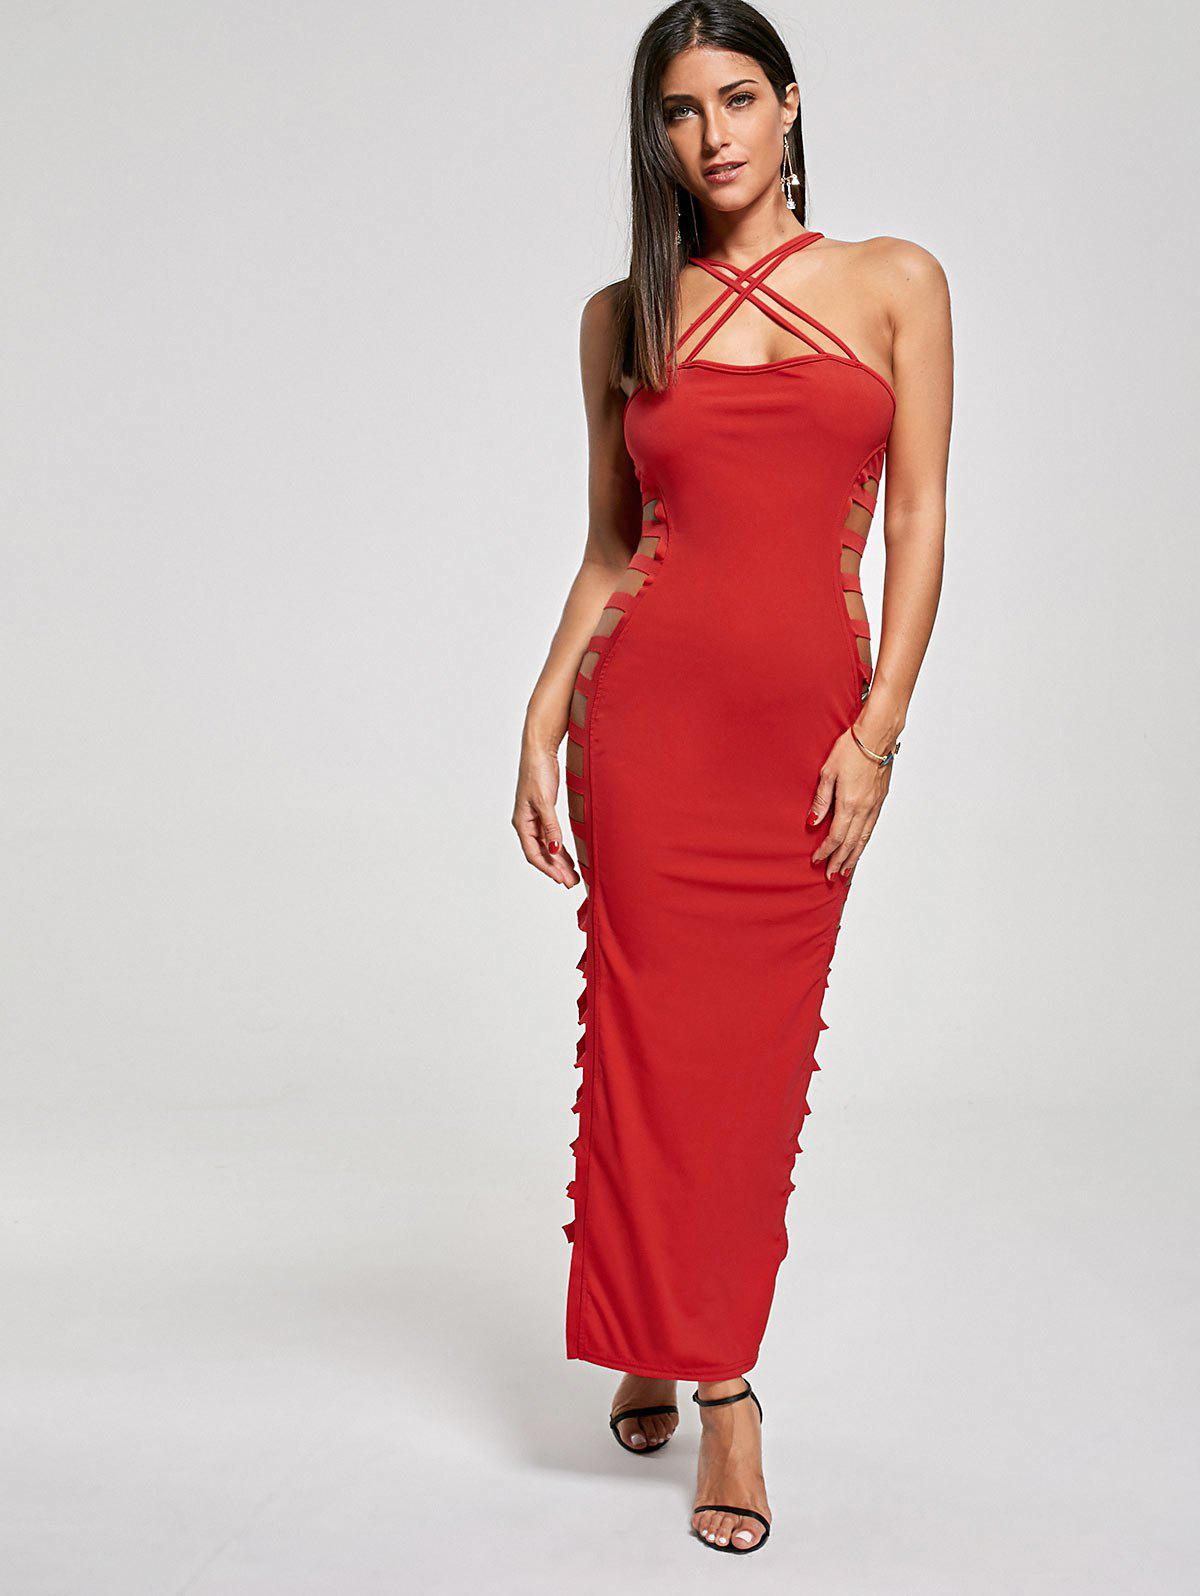 Sexy Cut Out Criss Cross Club Dress - RED S